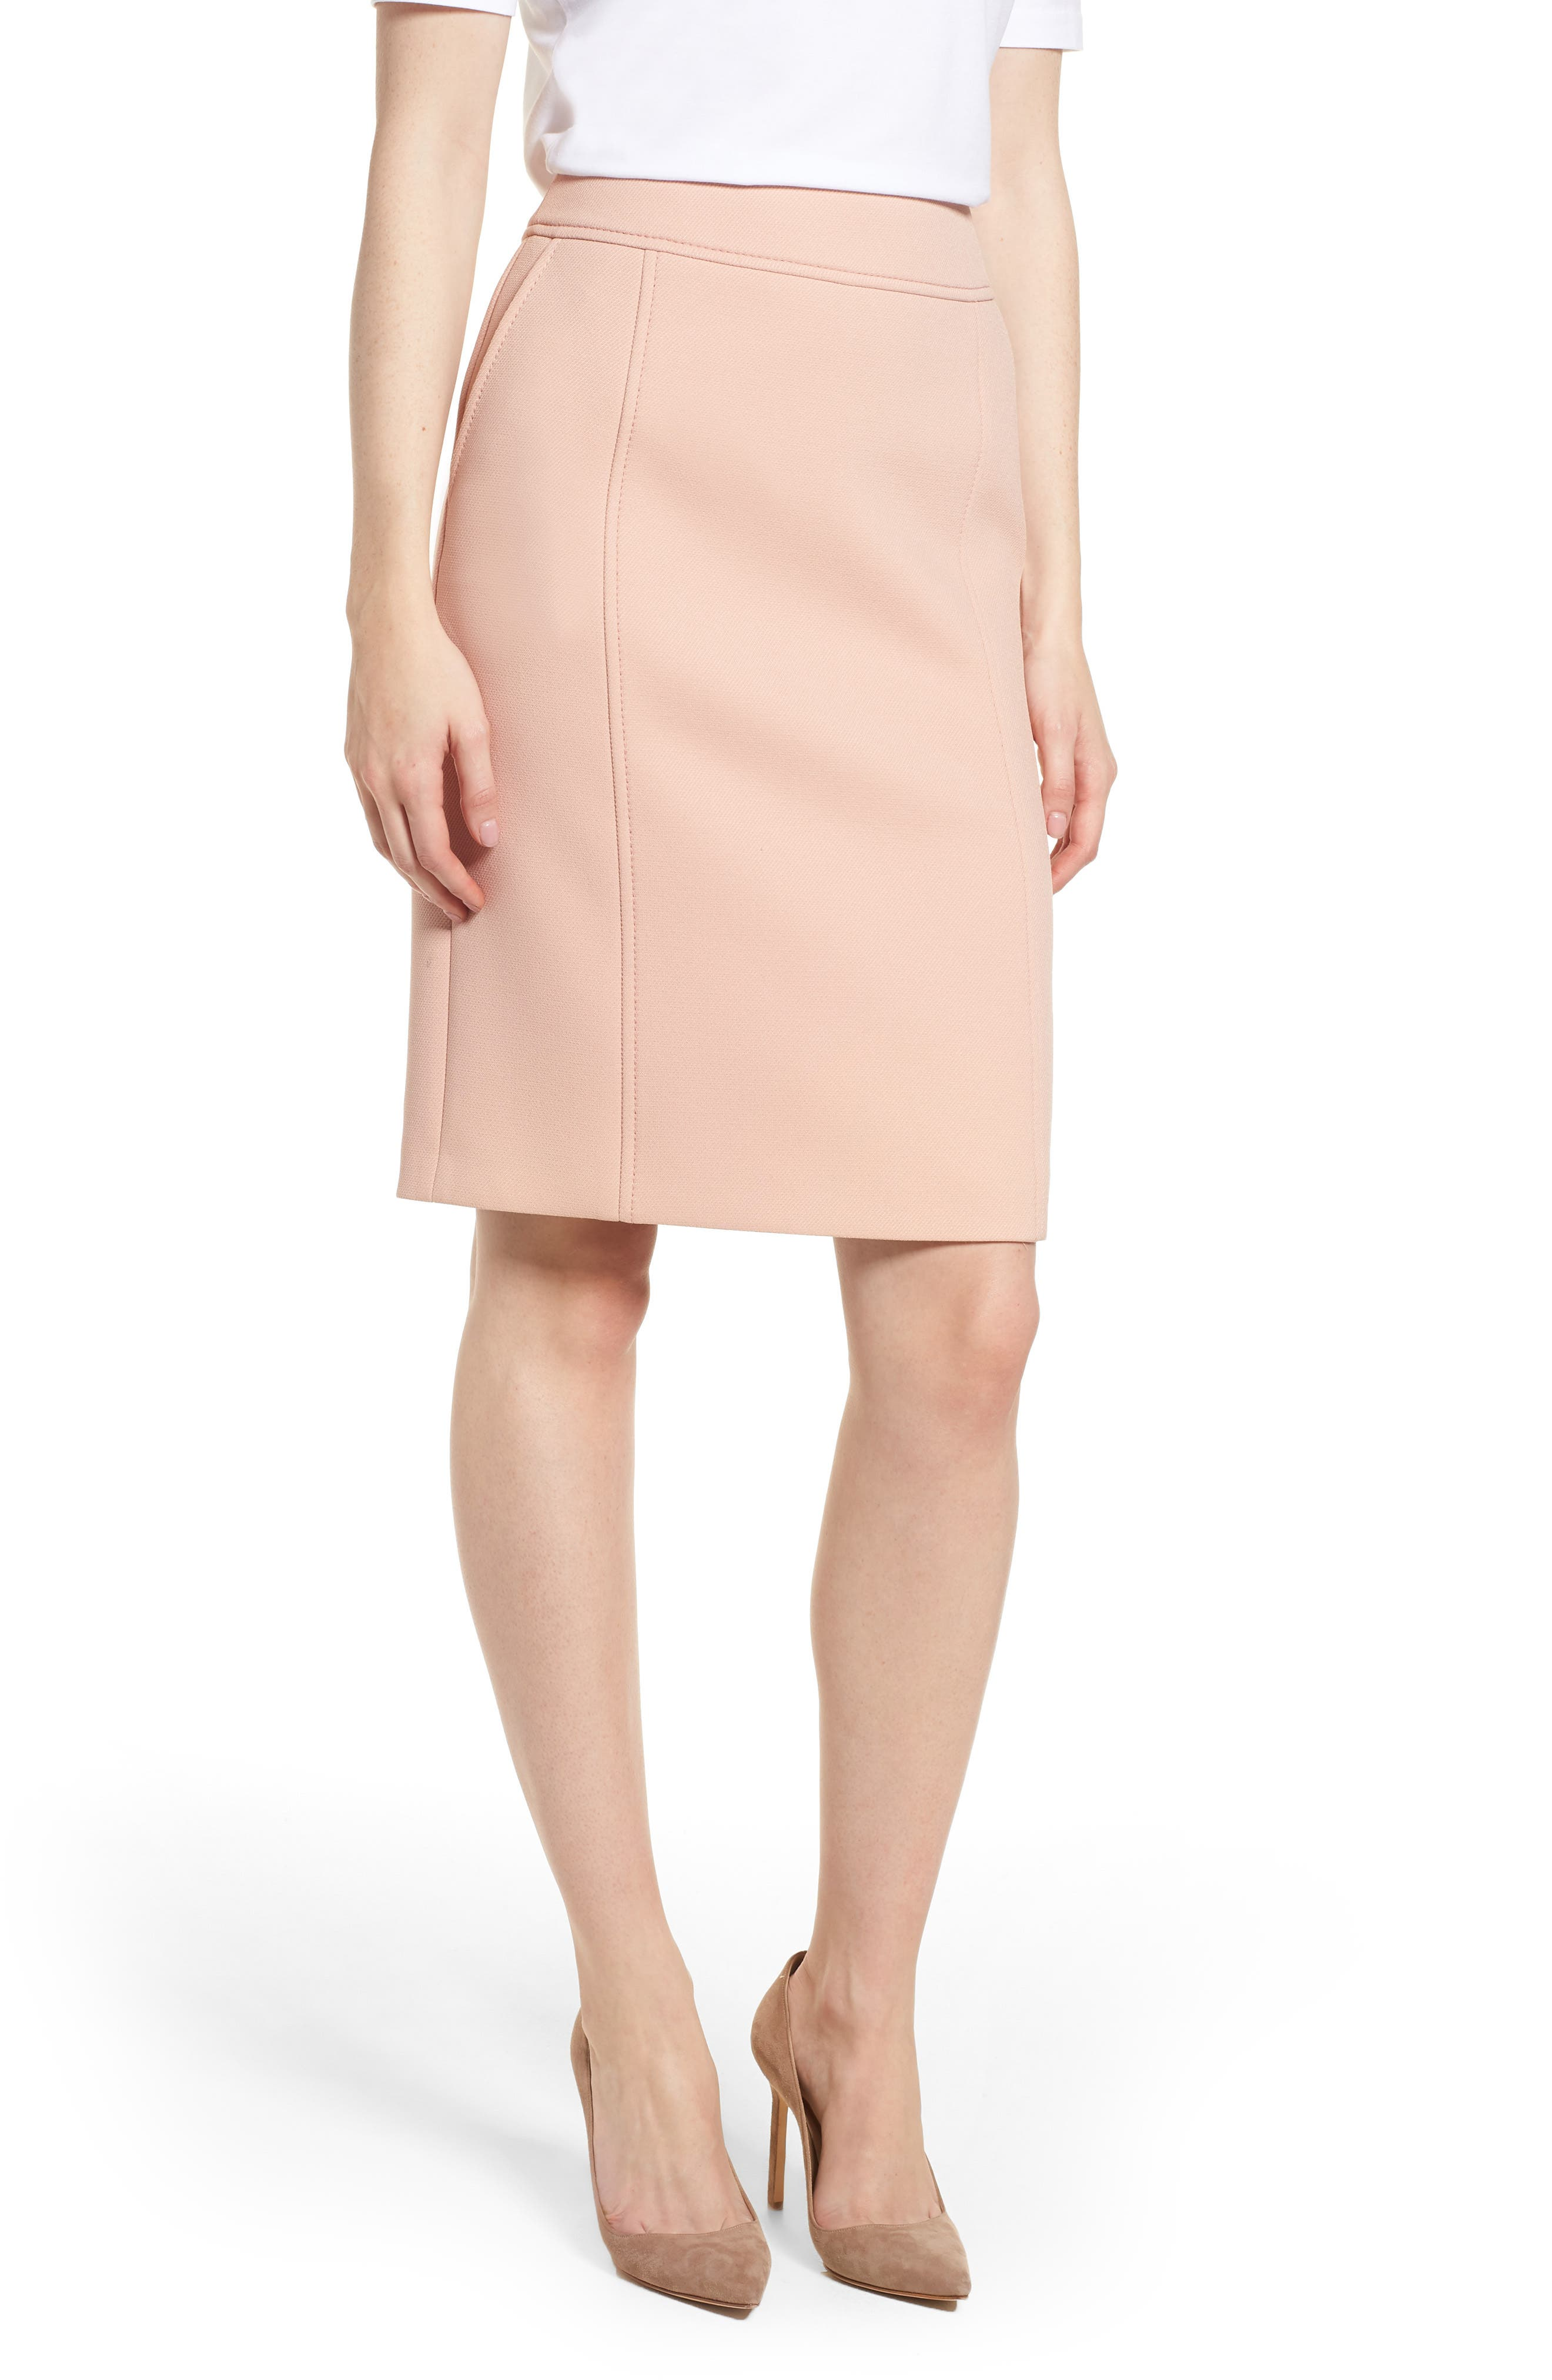 Vuleama Compact Twill Pencil Skirt,                             Main thumbnail 1, color,                             682